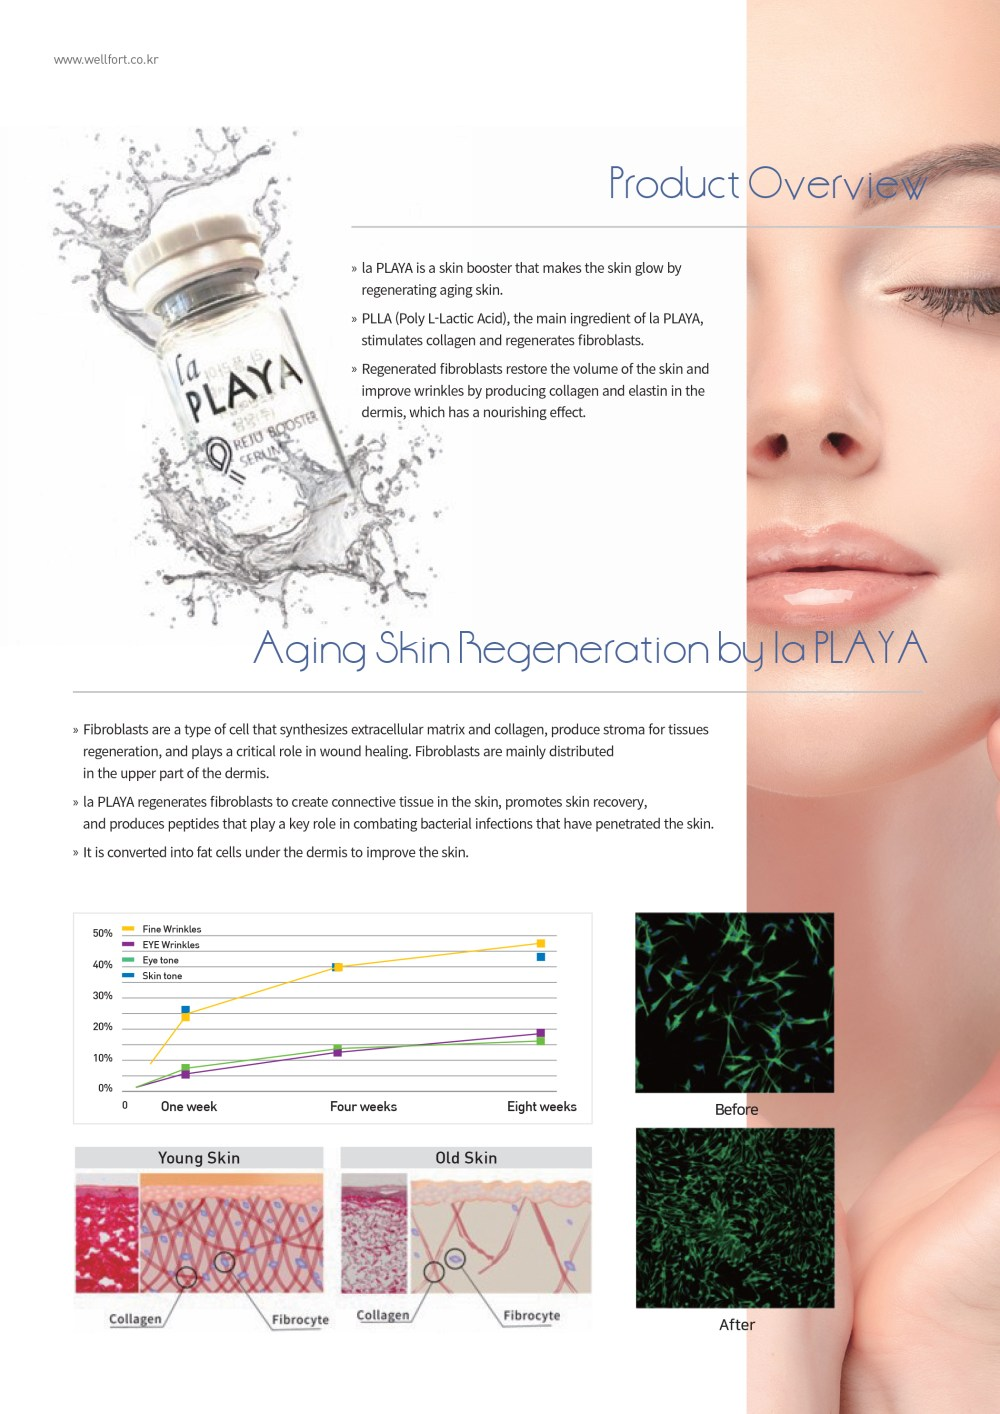 Product Overview la PLAYA is a skin booster that makes the skin glow by regenerating aging skin.  PLLA (Poly L-Lactic Acid), the main ingredient of la PLAYA, stimulates collagen and regenerates fibroblasts.  Regenerated fibroblasts restore the volume of the skin and improve wrinkles by producing collagen and elastin in the dermis, which has a nourishing effect. Aging Skin Regeneration by la PLAYA  Fibroblasts are a type of cell that synthesizes extracellular matrix and collagen, produce stroma for tissues regeneration, and plays a critical role in wound healing. Fibroblasts are mainly distributed  in the upper part of the dermis. Fibroblasts are a type of cell that synthesizes extracellular matrix and collagen, produce stroma for tissues regeneration, and plays a critical role in wound healing. Fibroblasts are mainly distributed  in the upper part of the dermis. It is converted into fat cells under the dermis to improve the skin.